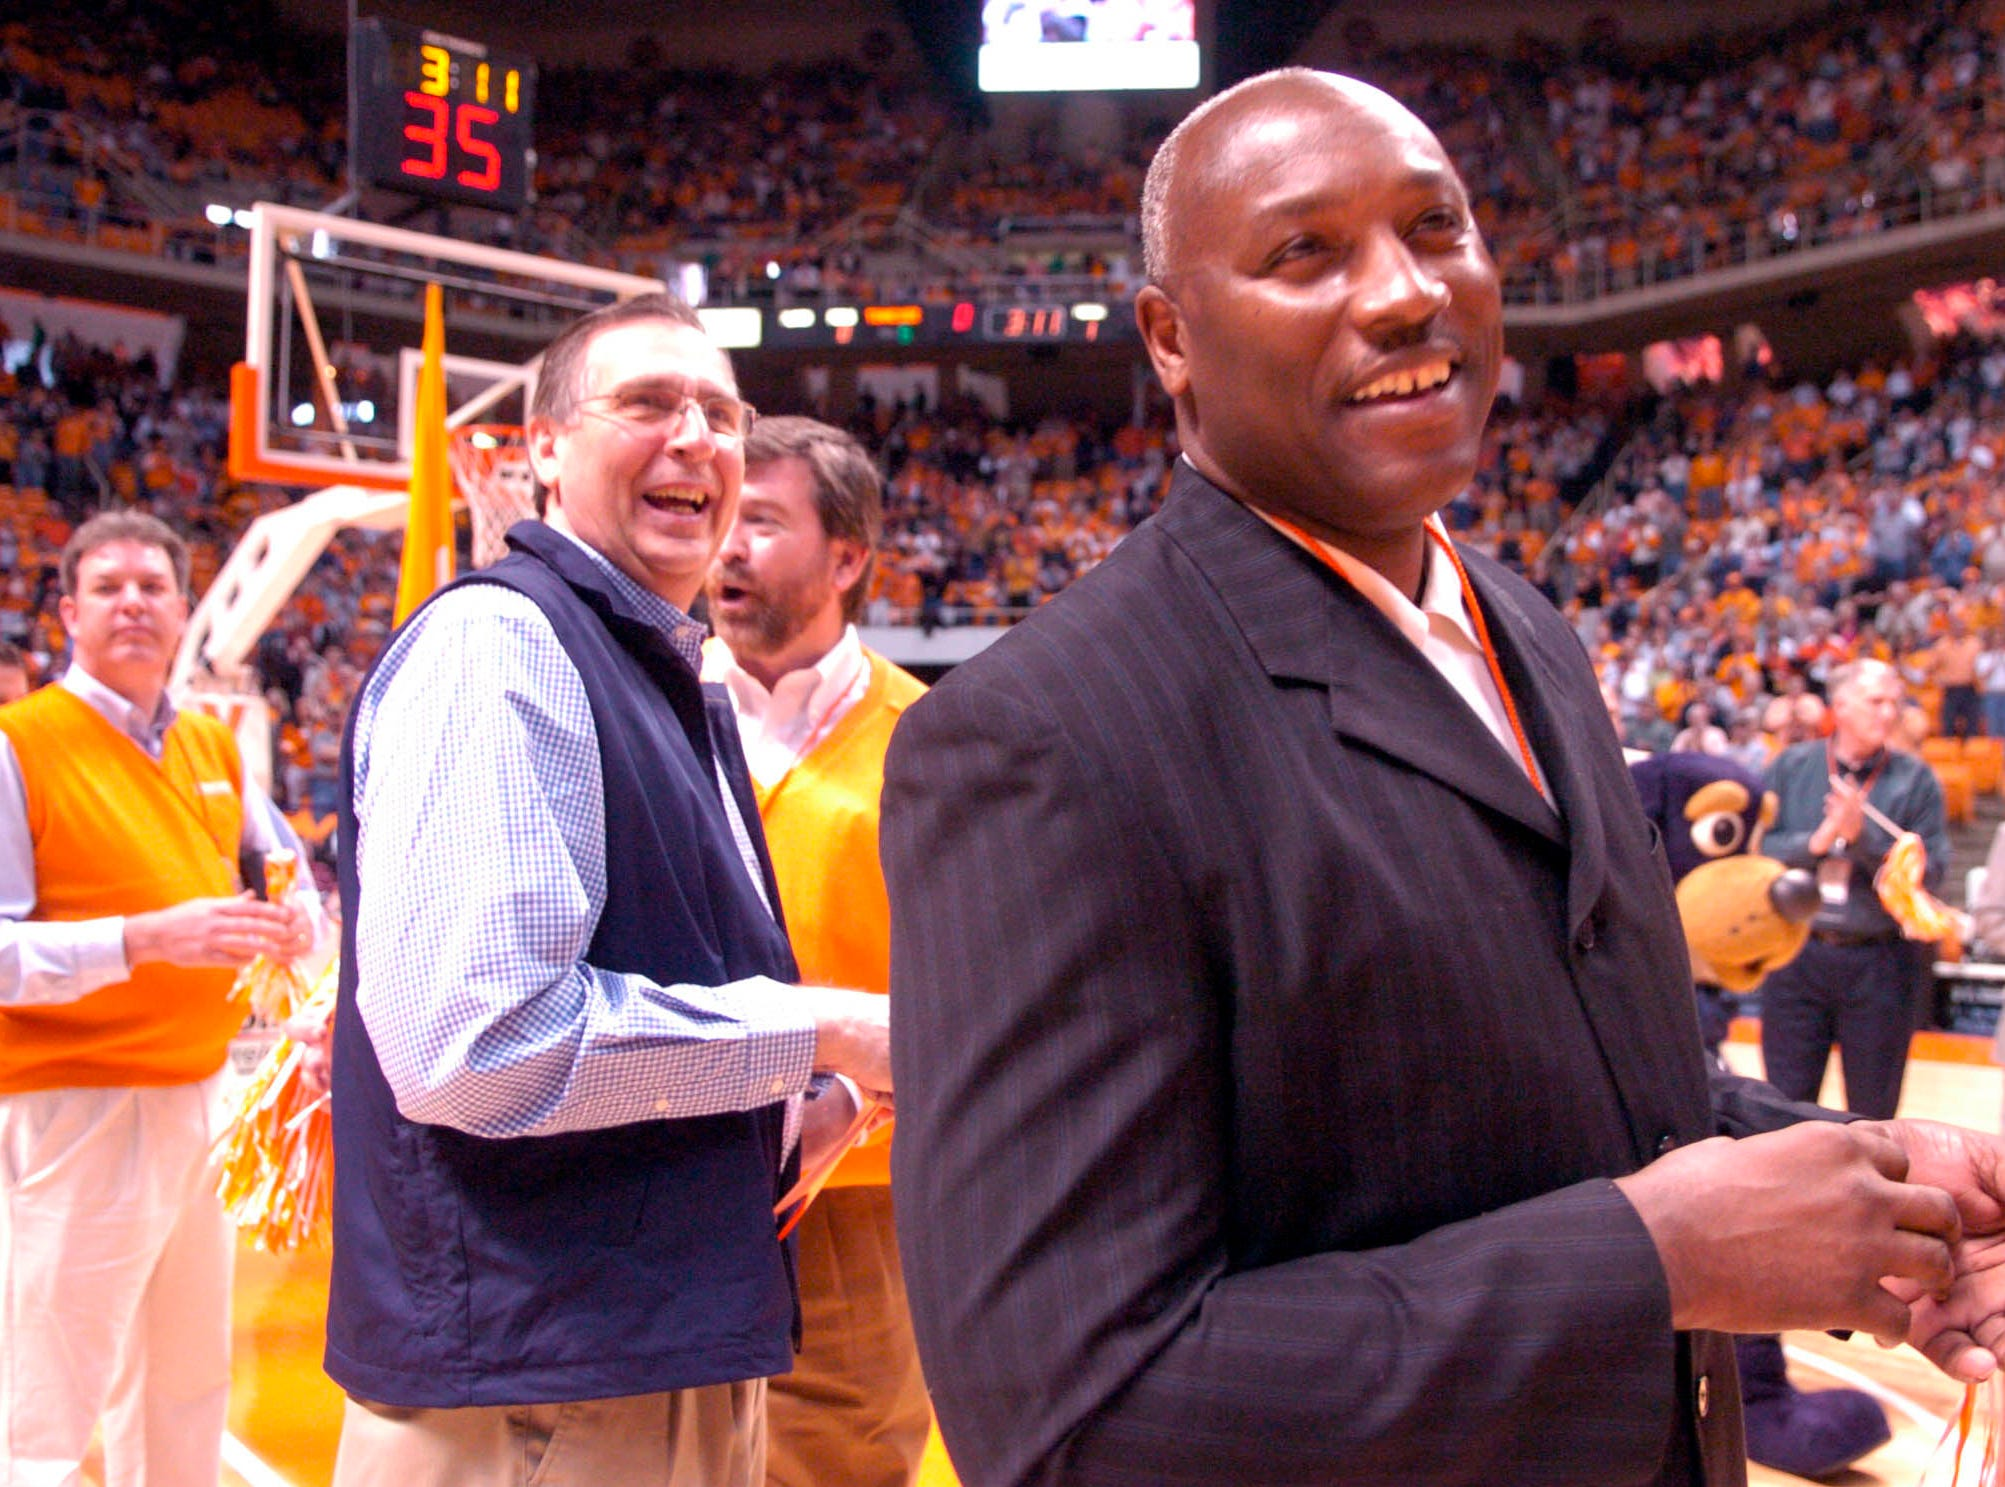 Former Tennessee basketball player Larry Robinson (right) stands next to former head coach Don DeVoe as players from the 1970's welcomed the current team onto the court.2006